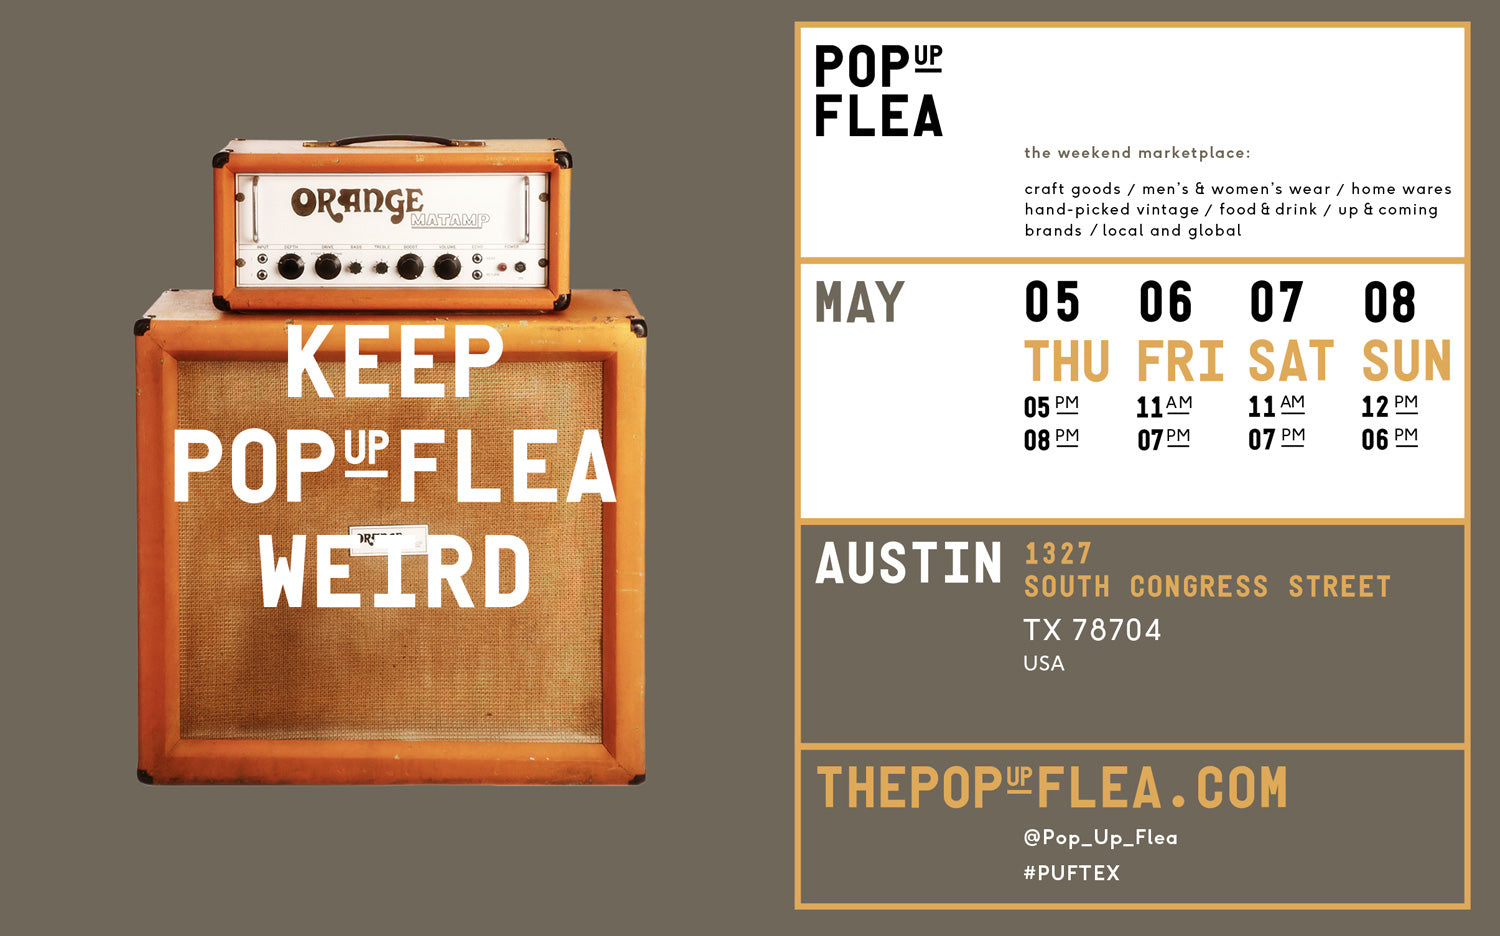 Pop Up Flea South Congress Austin Texas Speaker Image